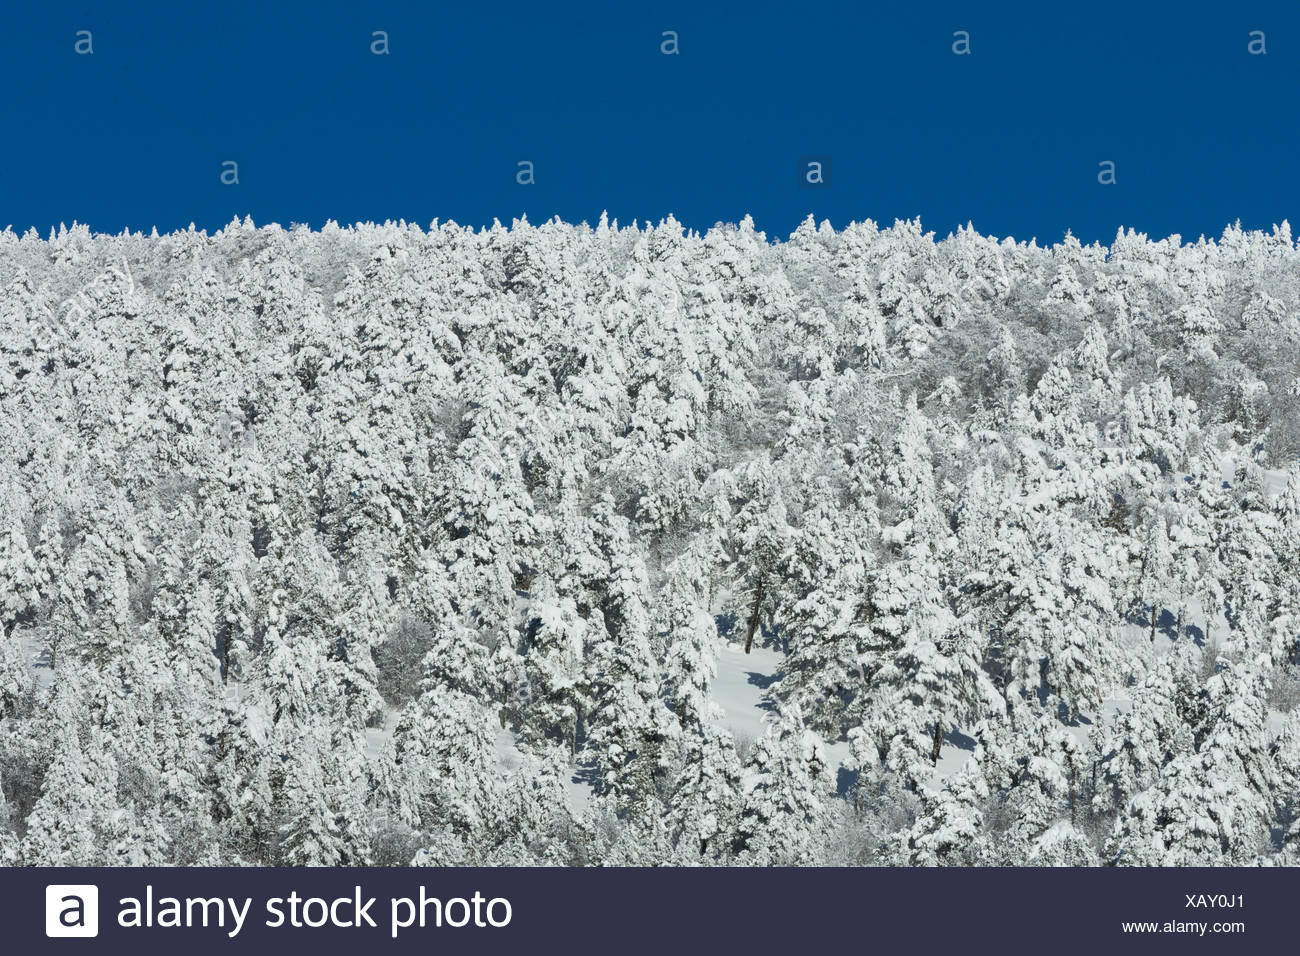 Snowy conifer forest in the Mont Ventoux - Vaucluse - France - Stock Image